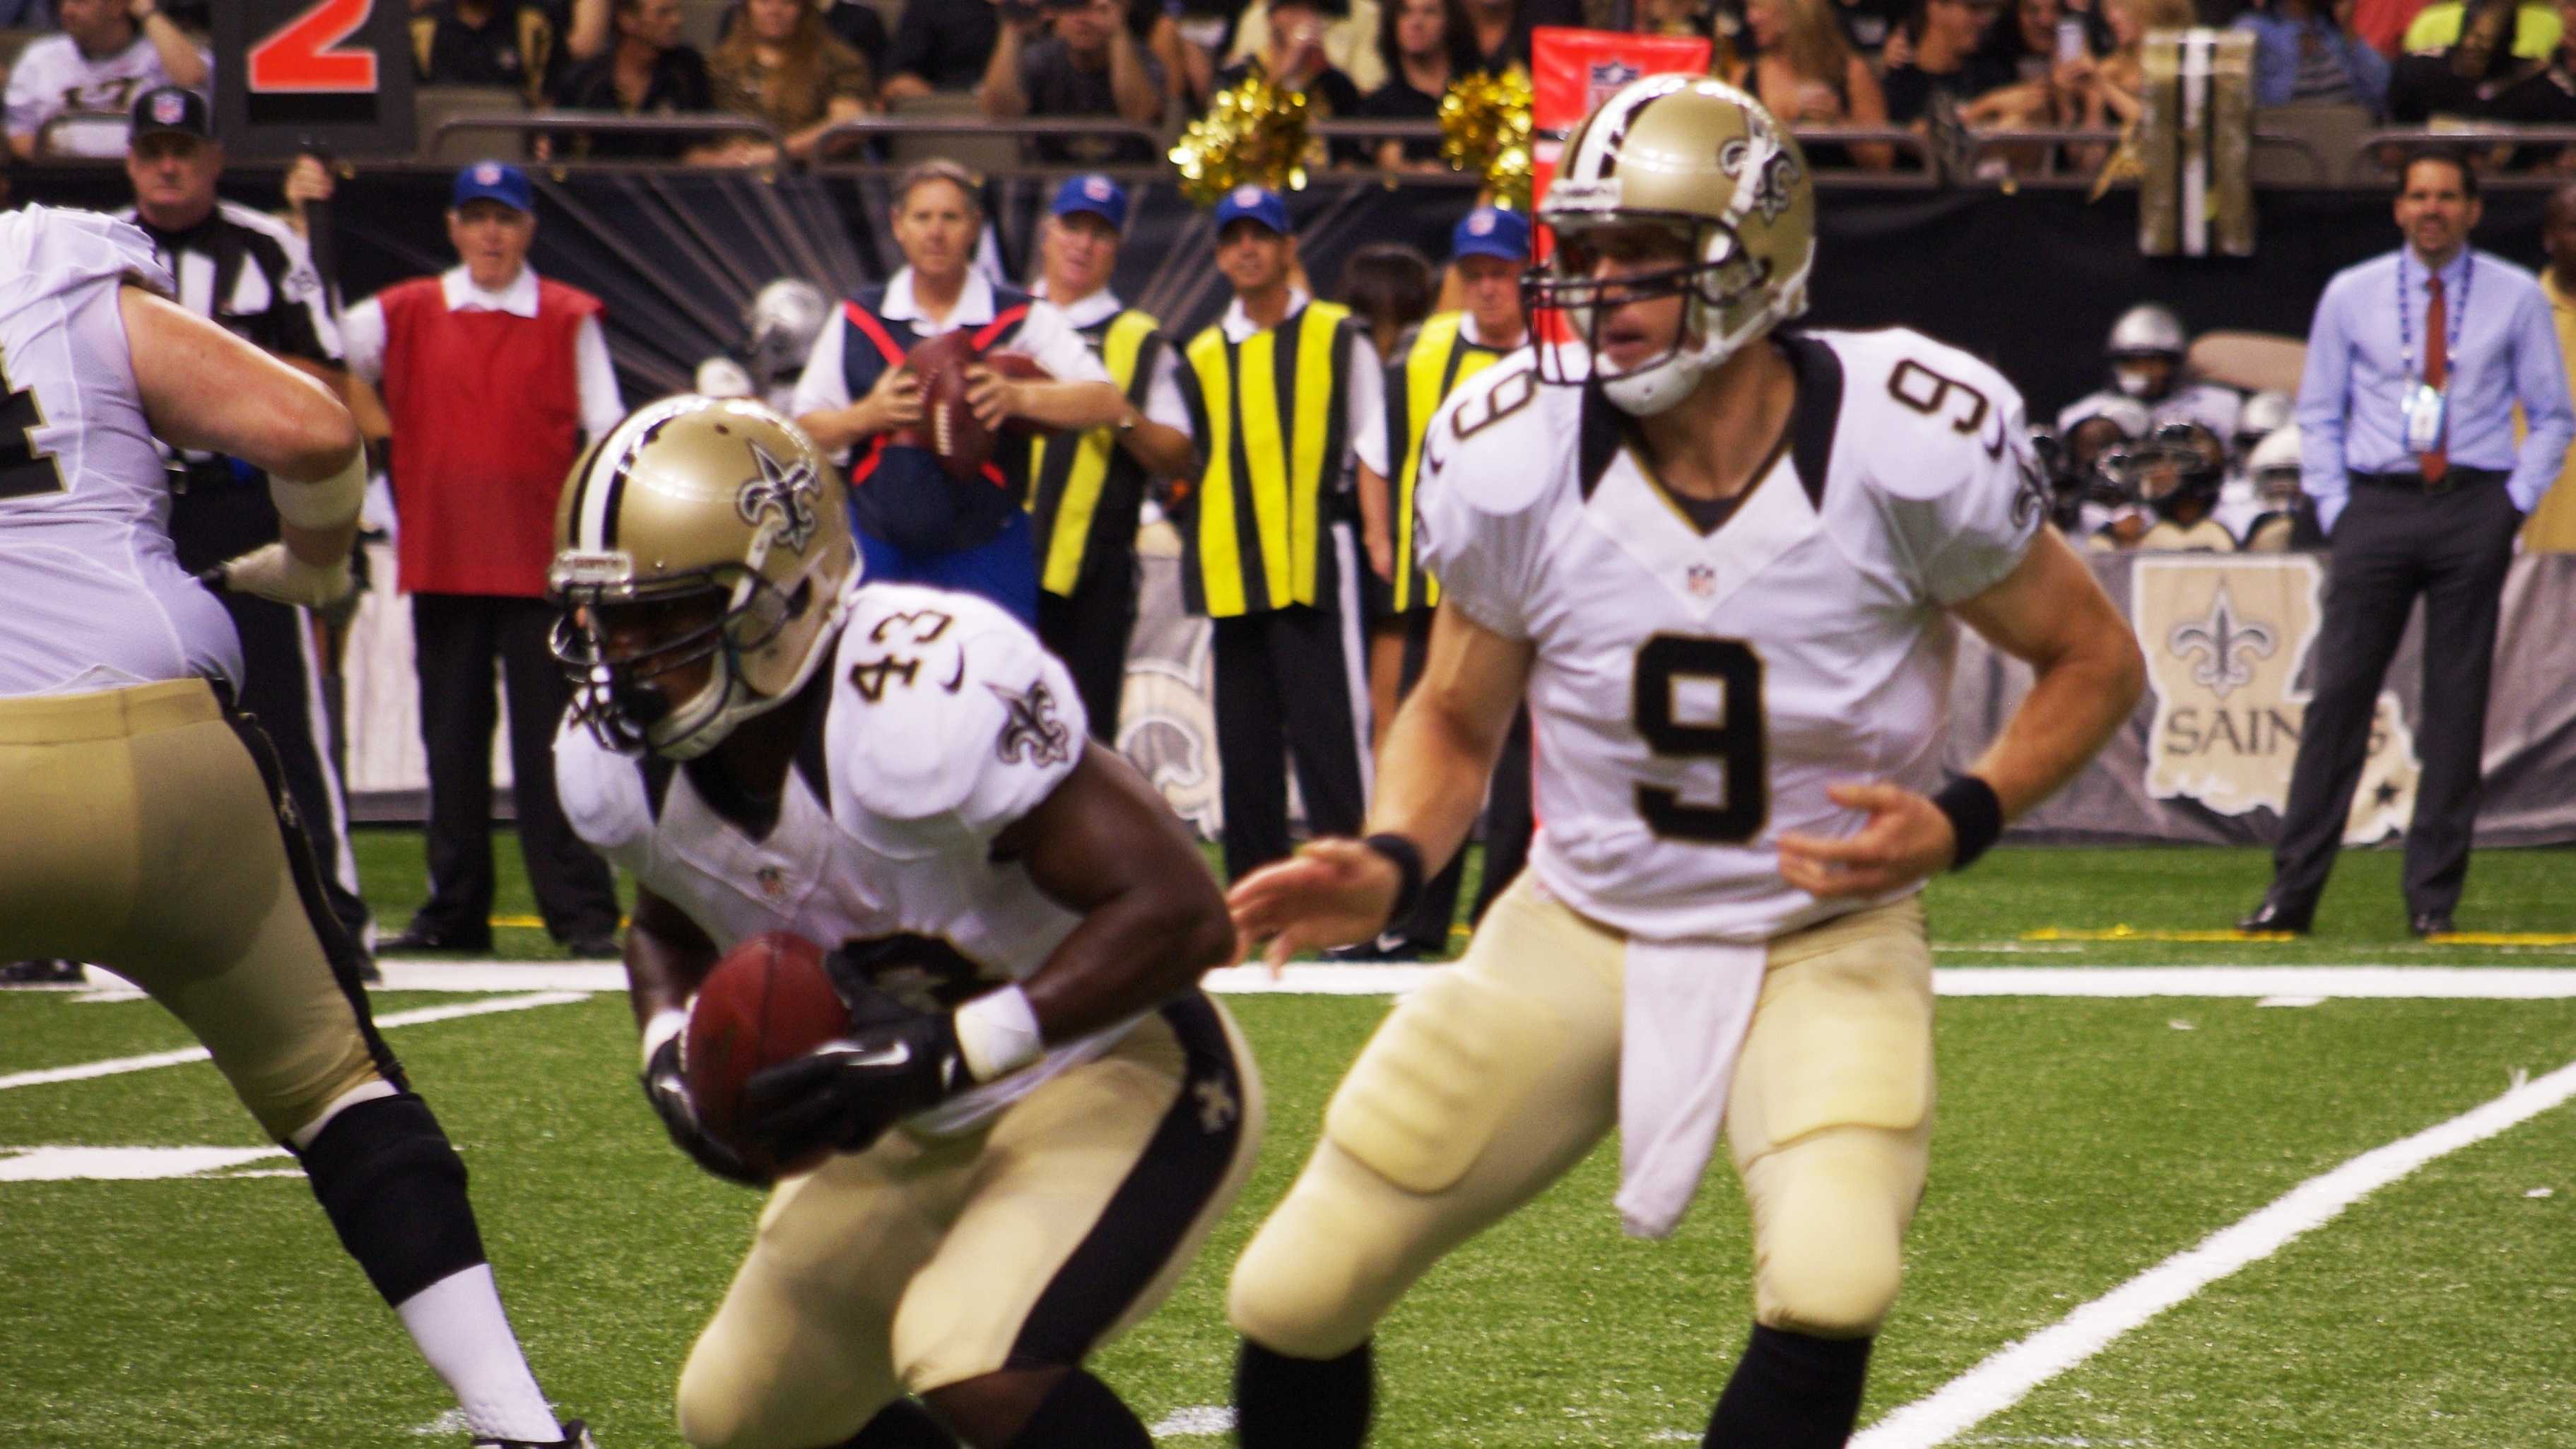 Drew Brees hands the ball to Darren Sproles in the second quarter of the Saints' pre-season win over the Oakland Raiders.